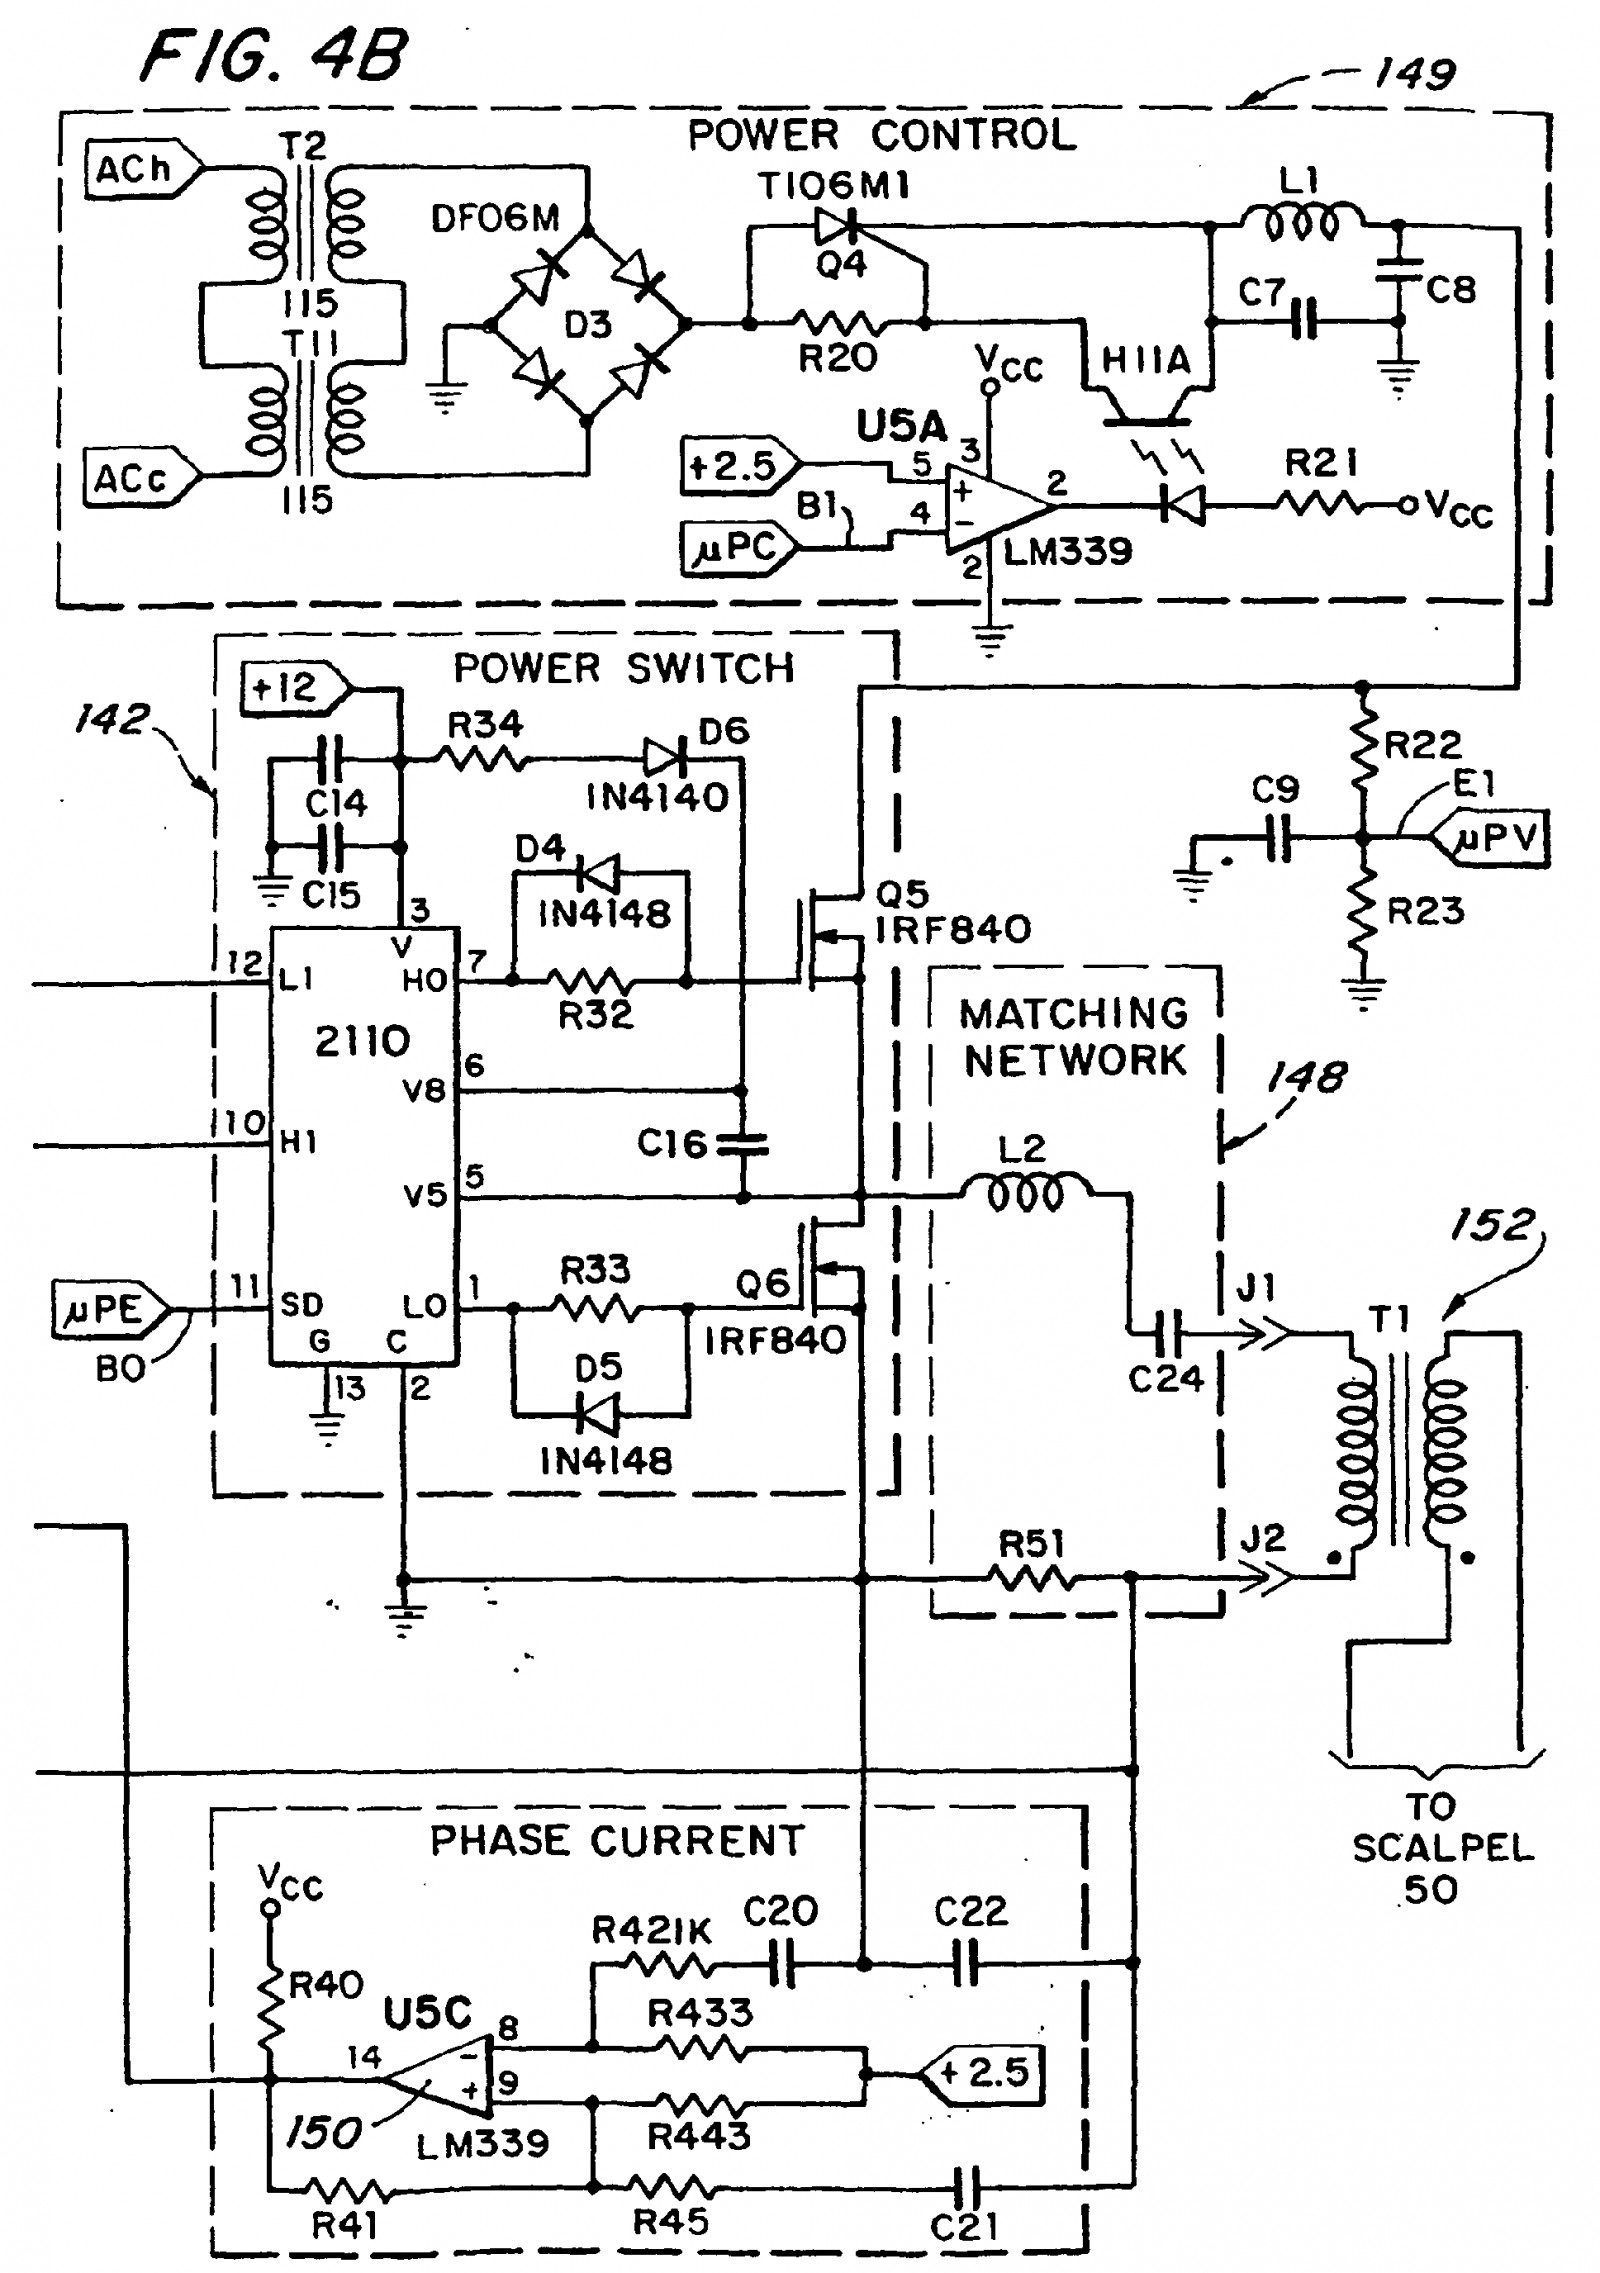 1600x2273 Rotork Actuator Wiring Diagram Pdf Fresh Cool Rotork Actuator